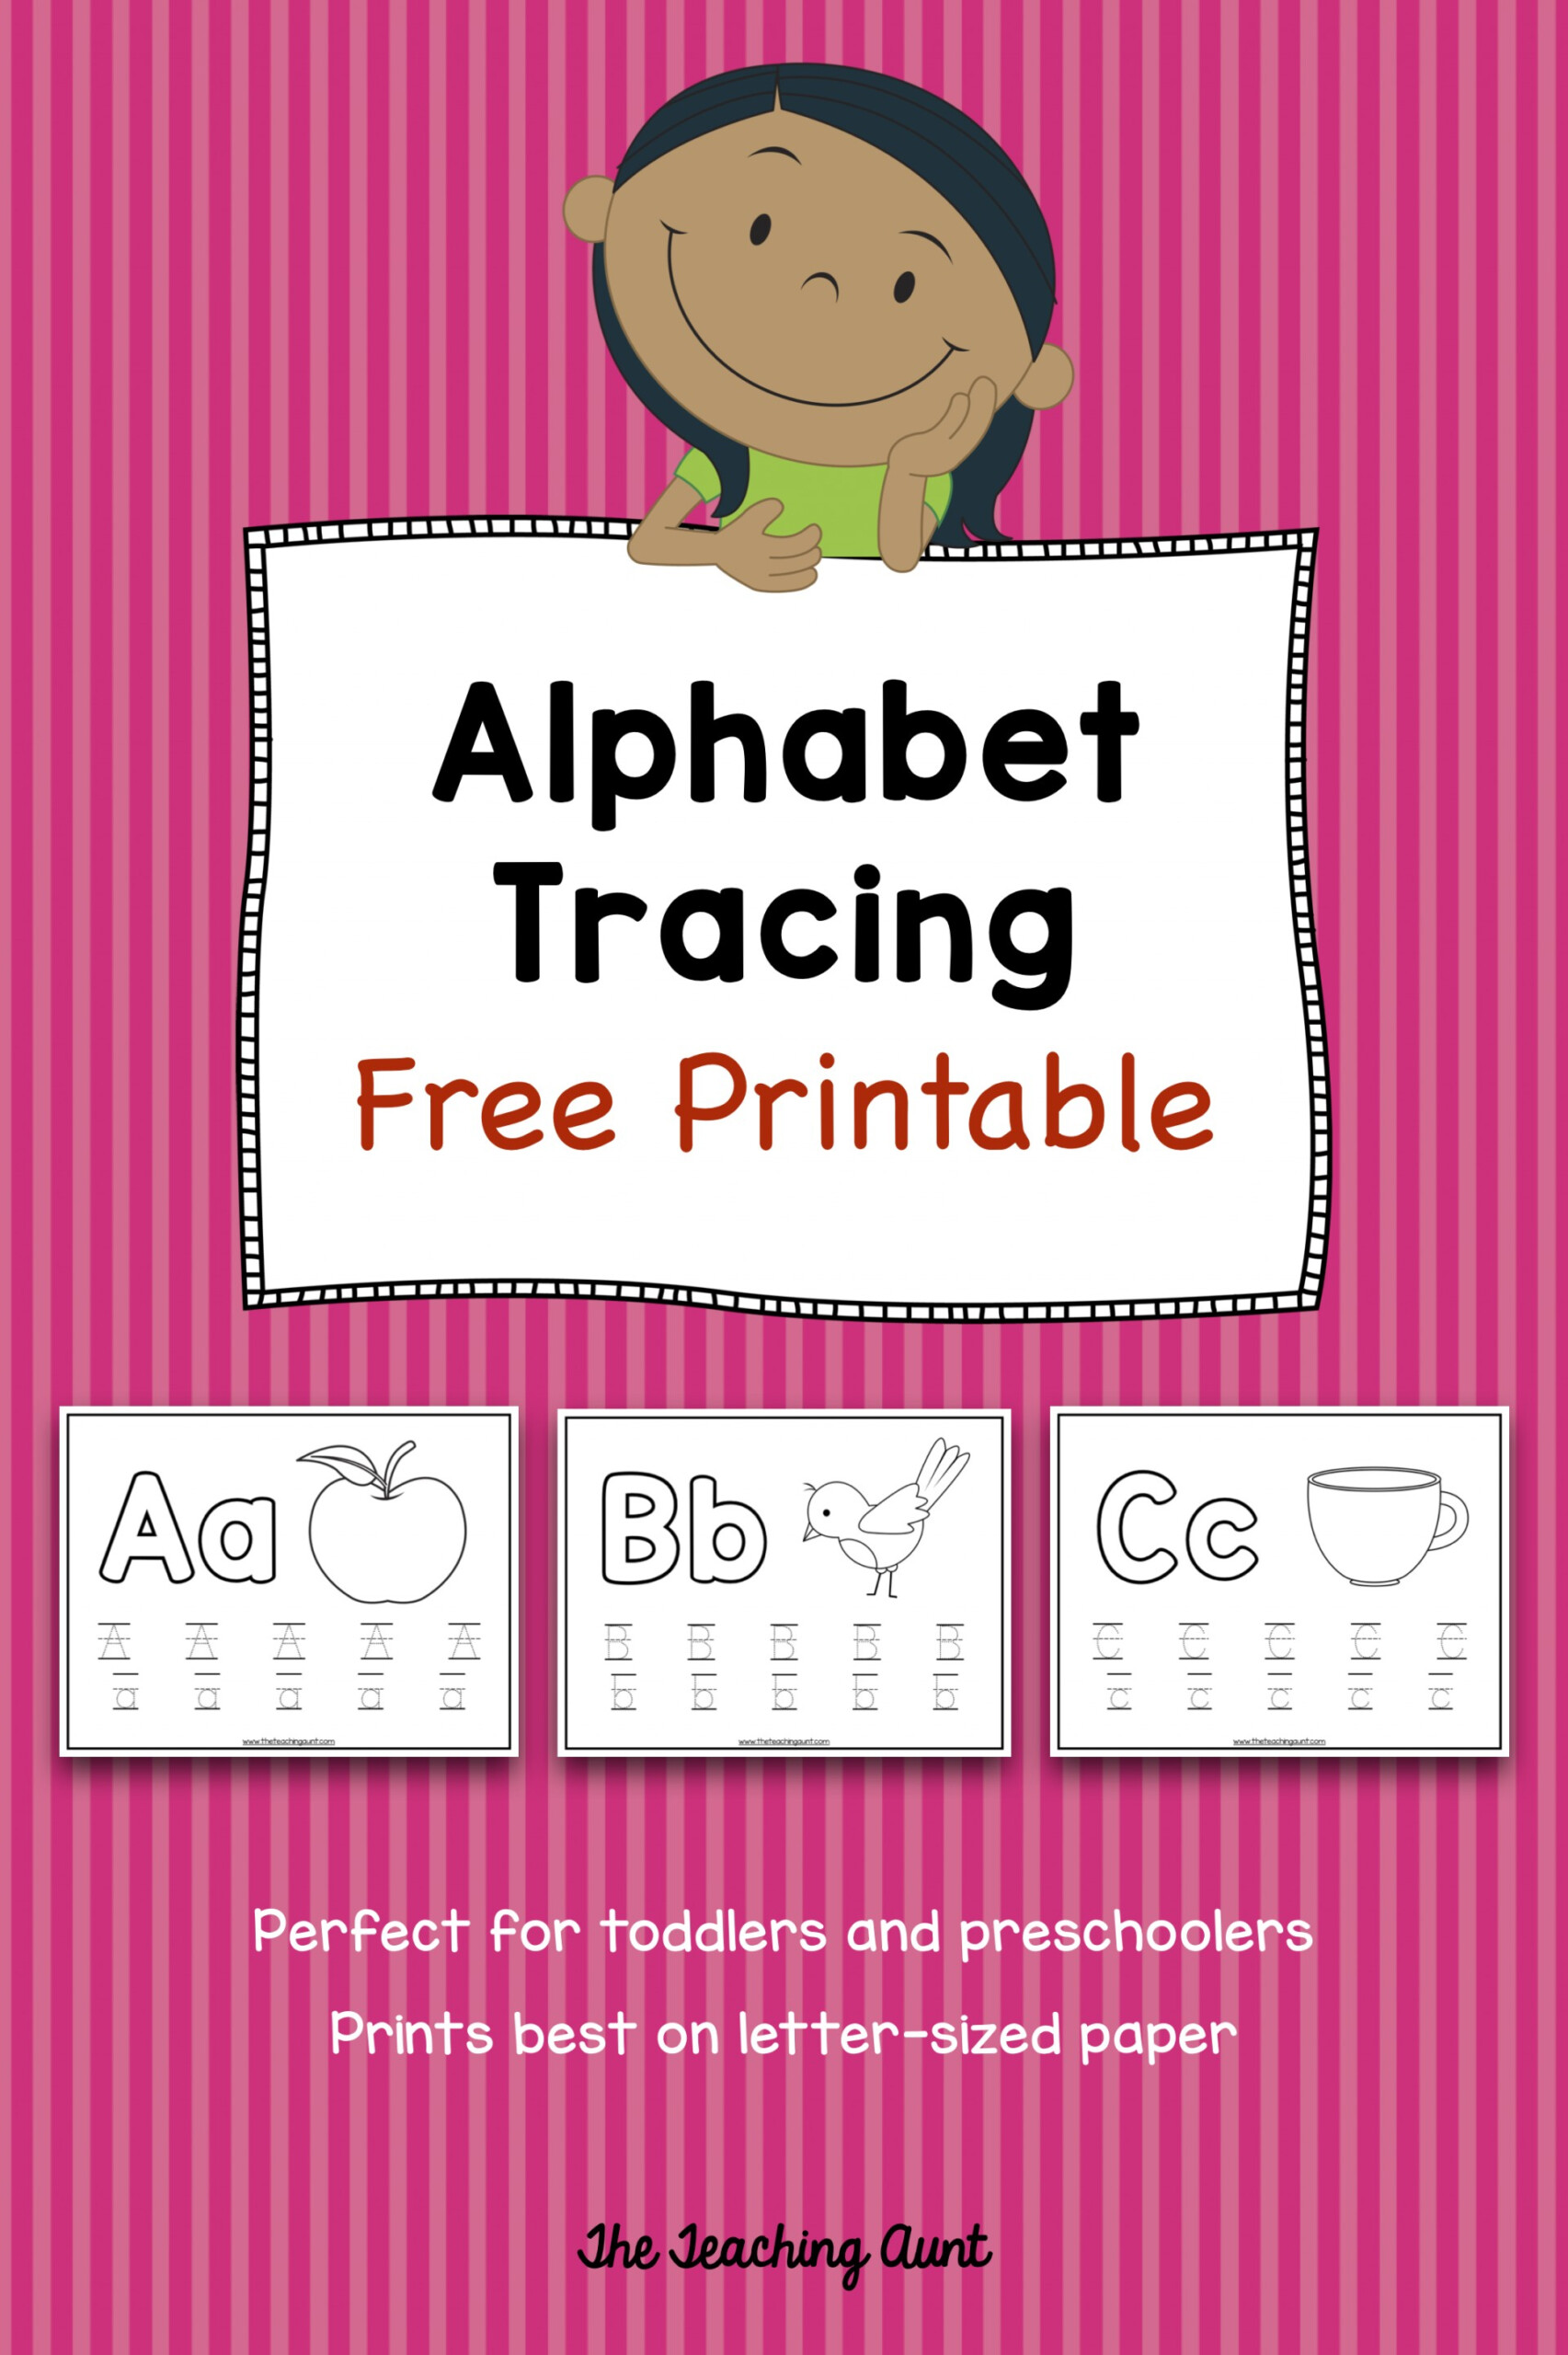 032 Free Newsletter Templates For Kindergarten Teachers with Tracing Letters Editable